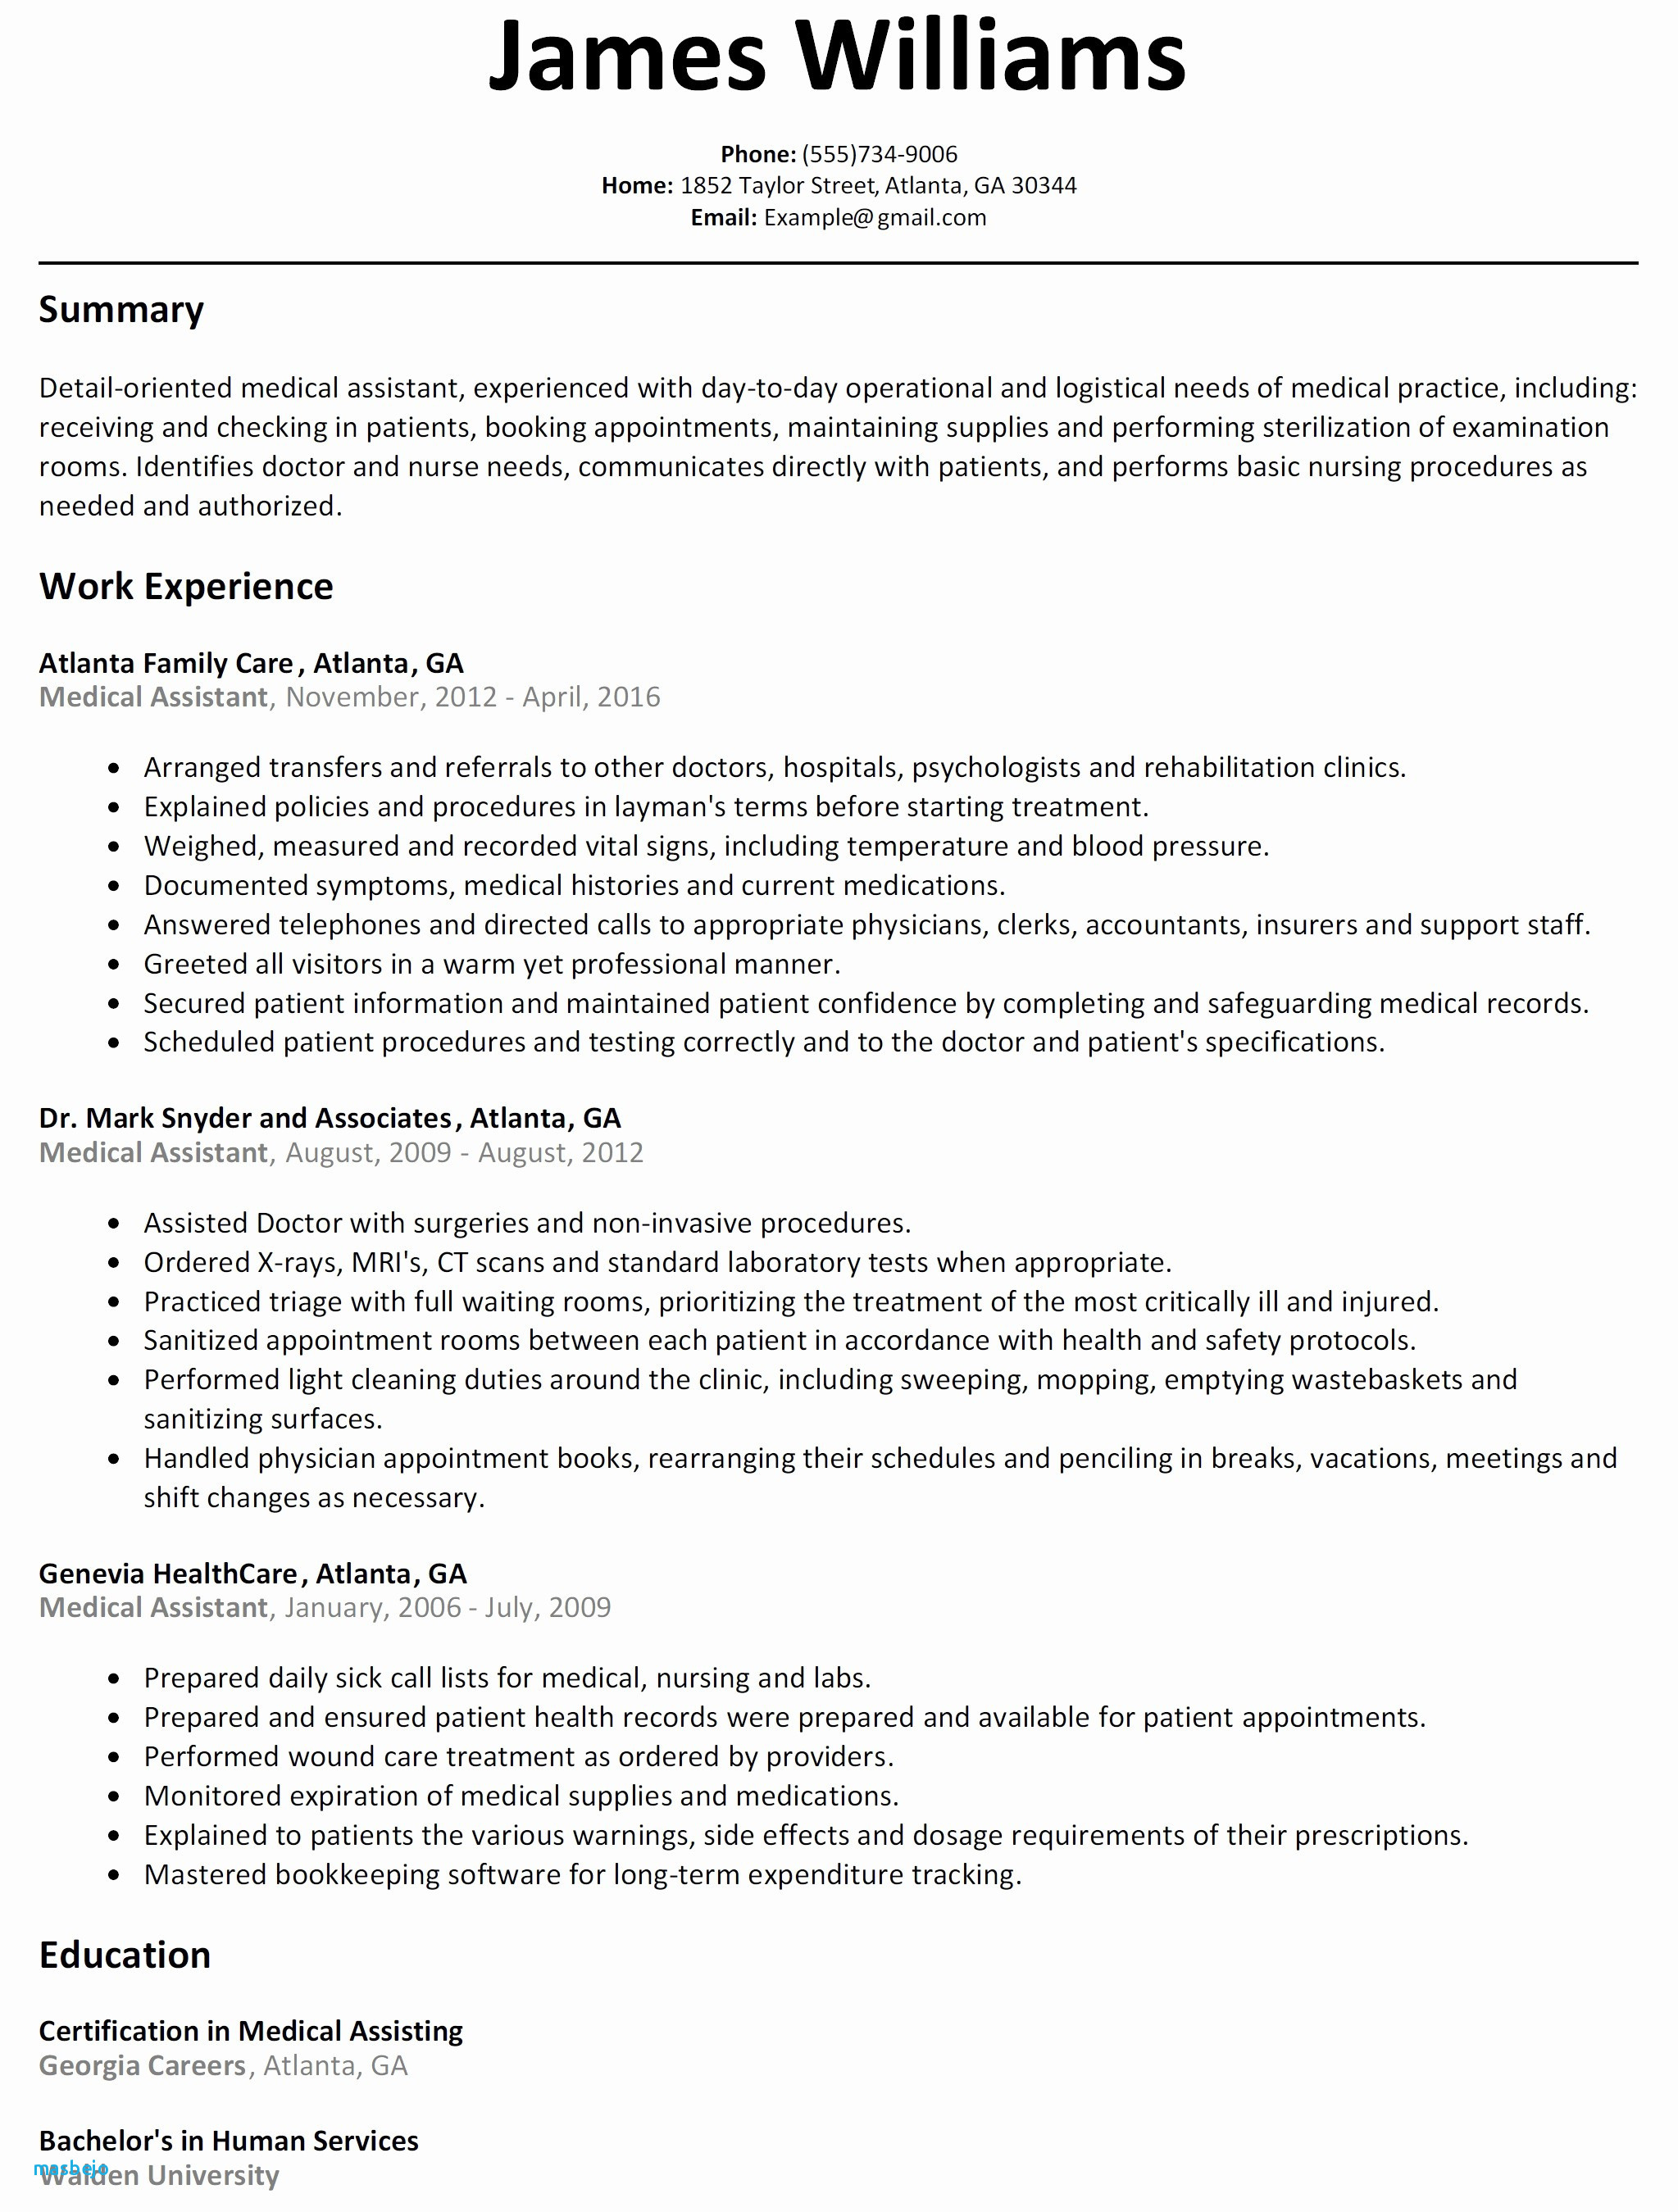 Rn Resume Samples - Experienced Nurse Resume Examples Resume for Nurse Elegant New Nurse